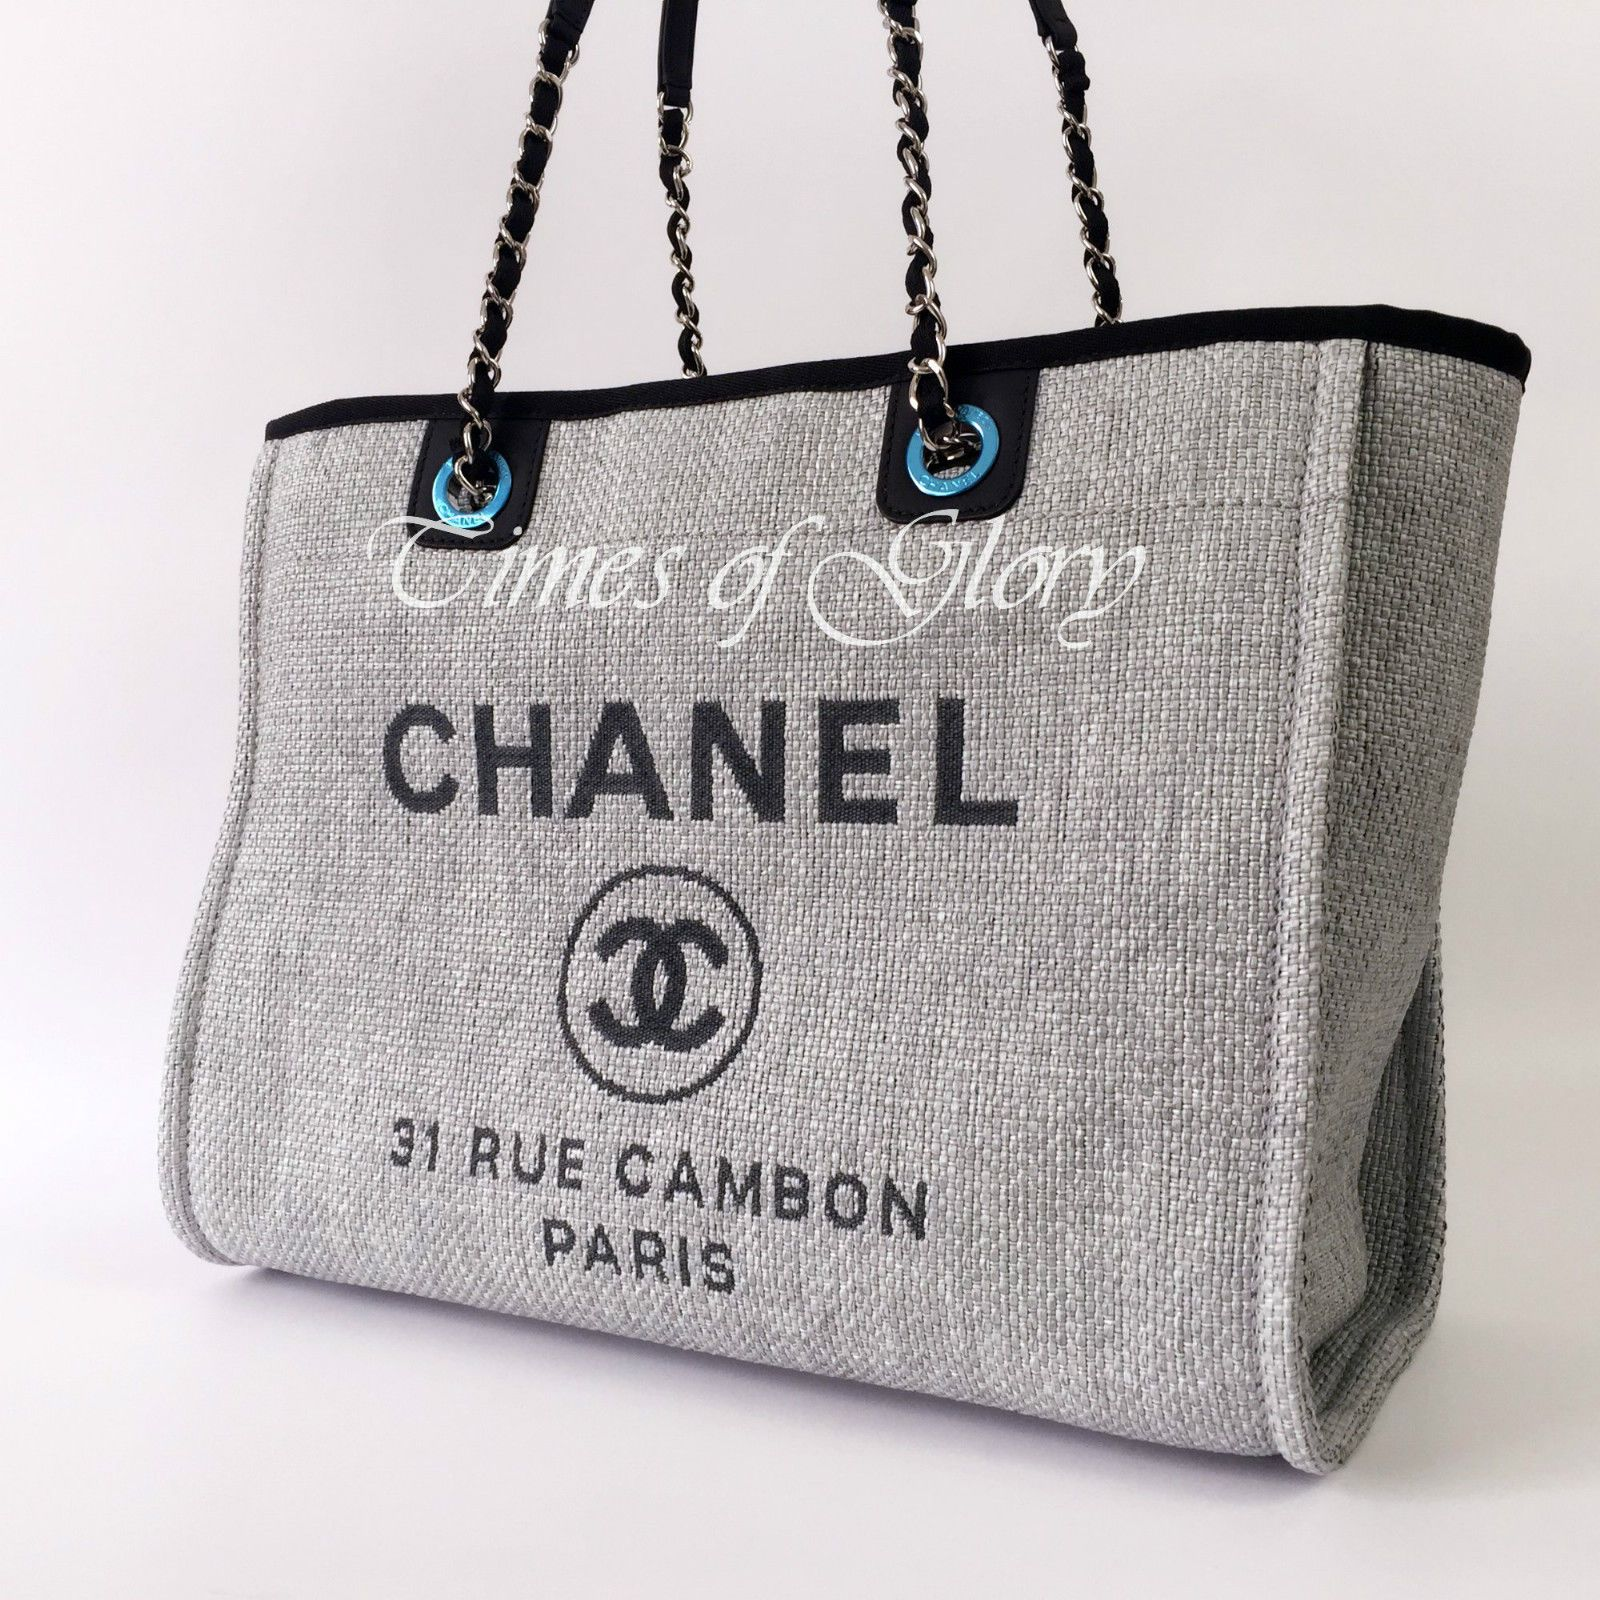 details about new chanel deauville grey canvas black trim grand shopper large tote bag - Large Tote Bags